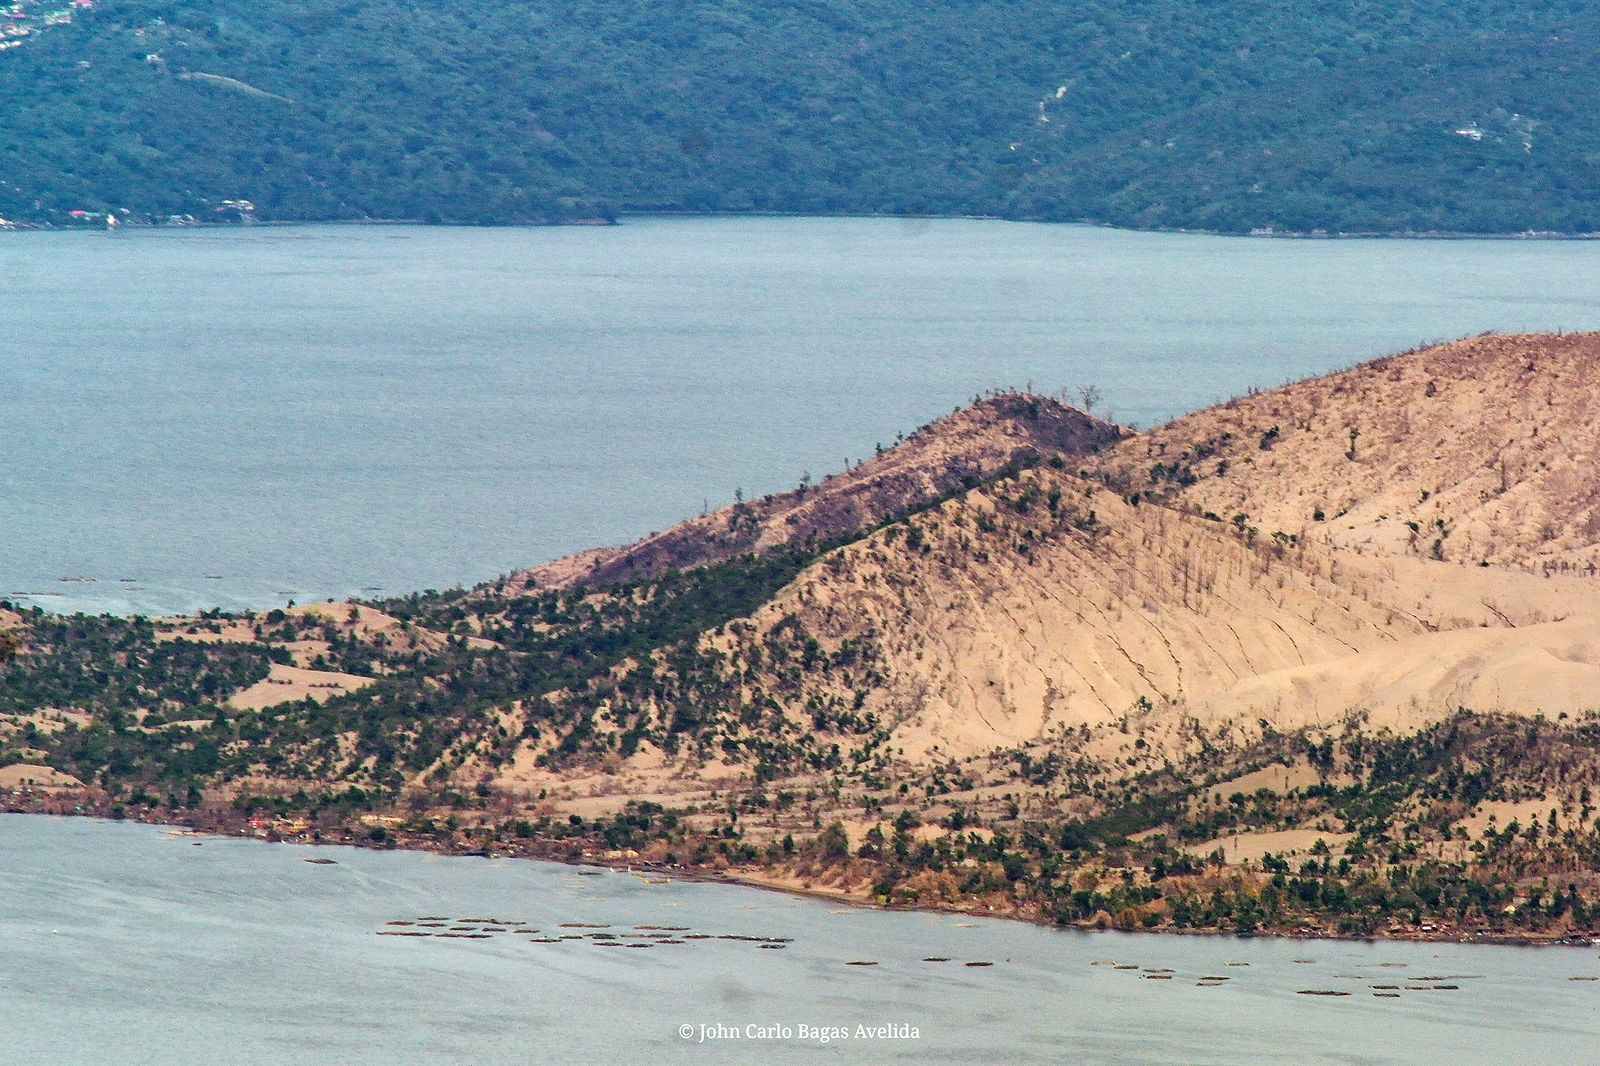 Taal - Several months after the Taal eruption, vegetation is noticed in certain parts of Volcano island - photo GMA News / YouScoopers - John Carlo Bagas Avelida